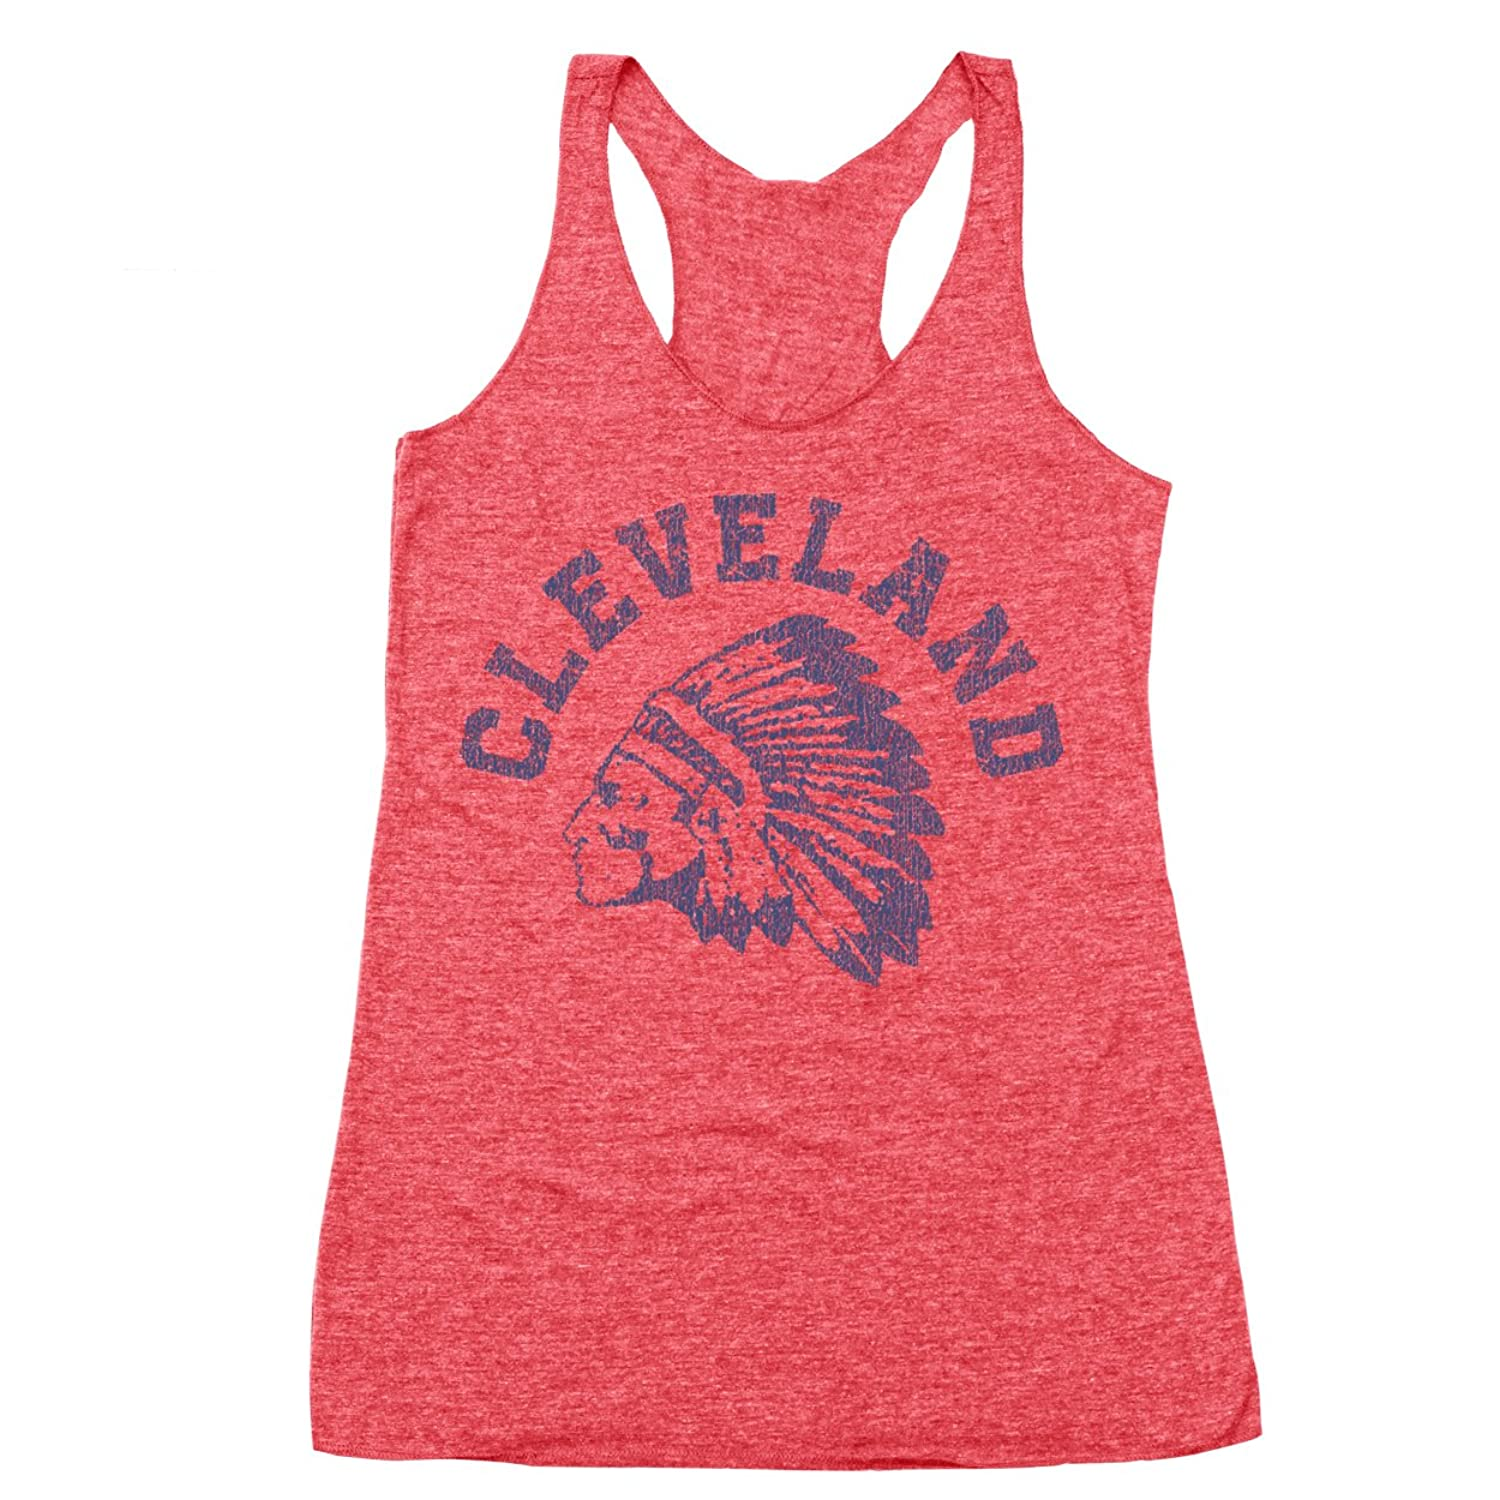 1920 Indian Chief Racer Back Tri-Blend Tank Top